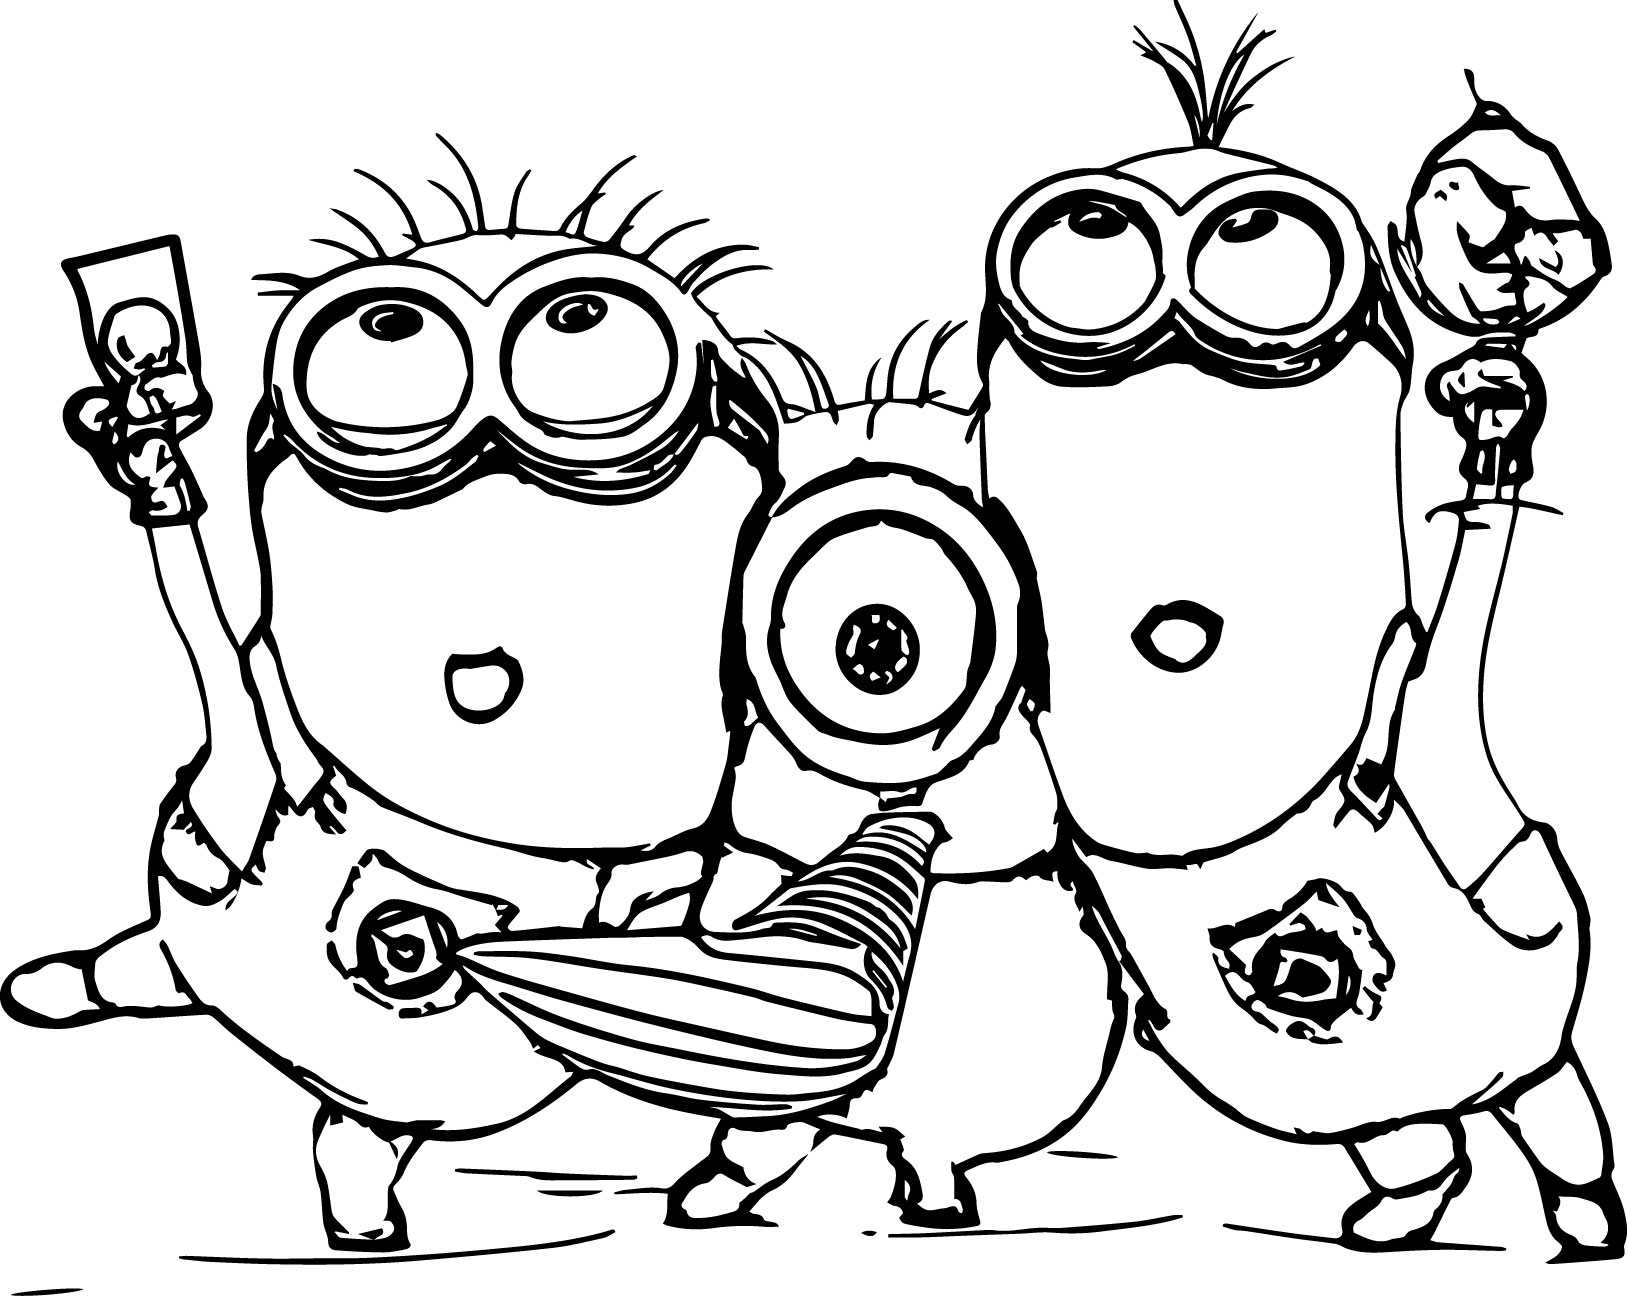 Free Minion Coloring Pages Minion Coloring Pages  Best Coloring Pages For Kids